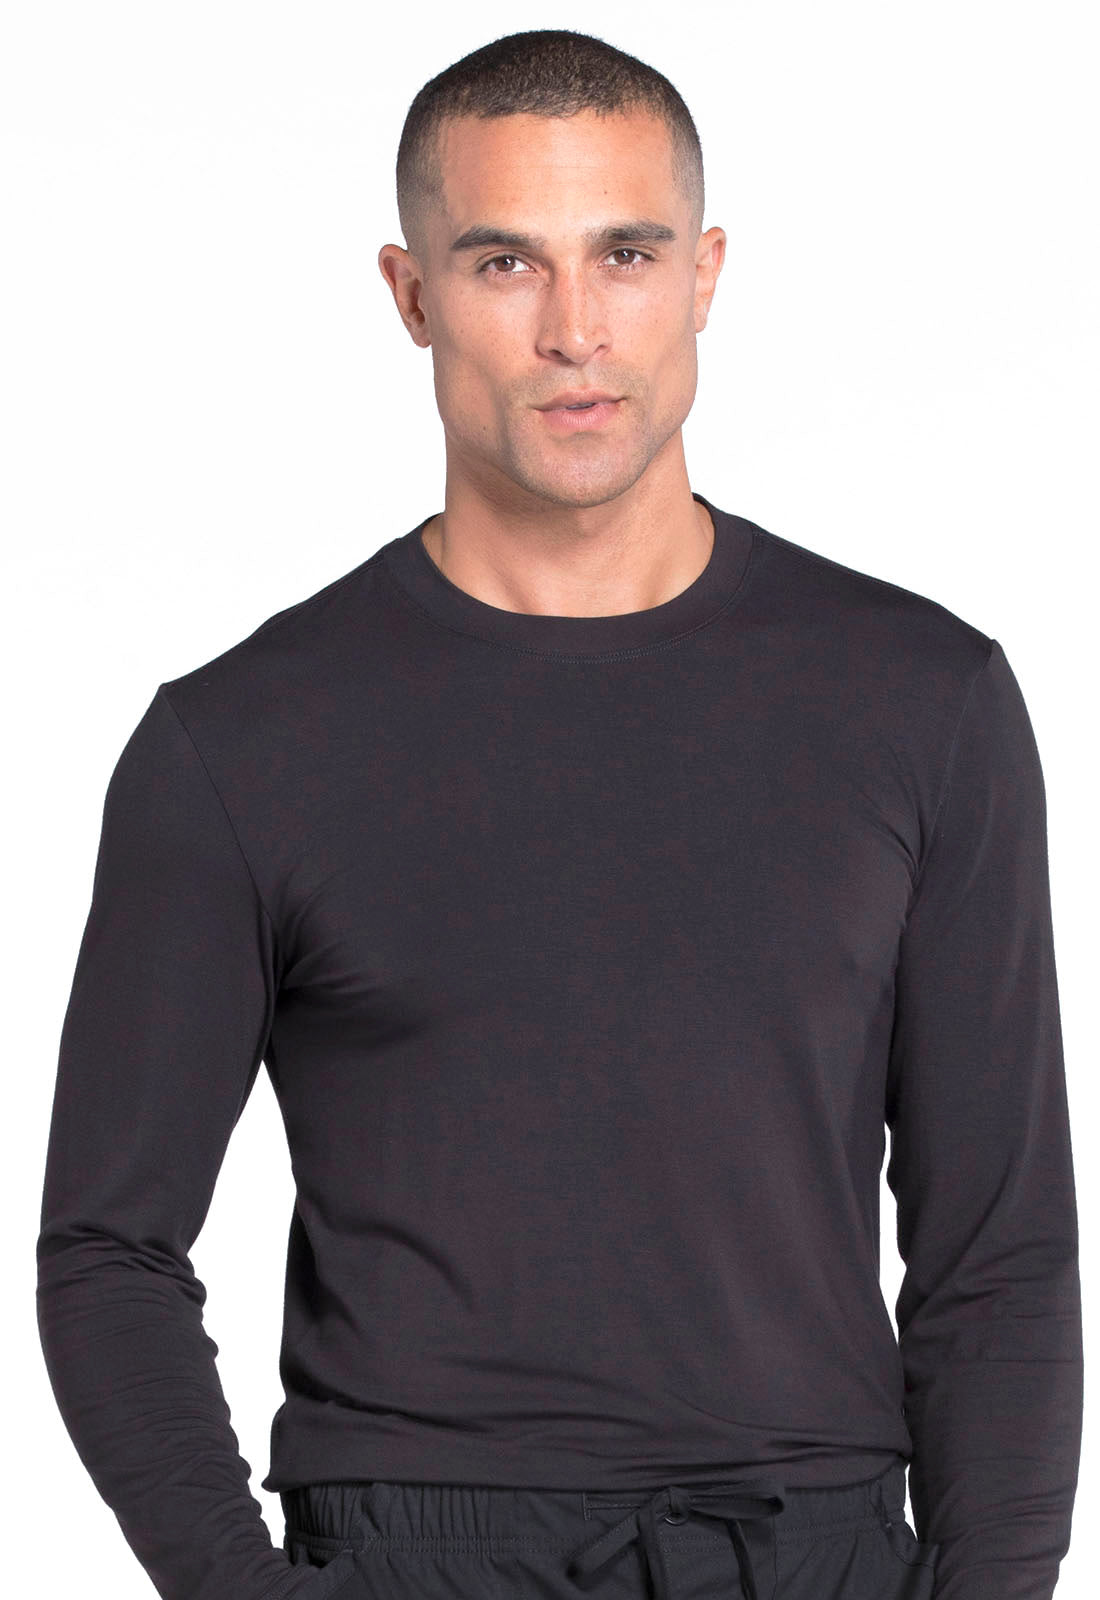 Men's Underscrub Knit Top WW700